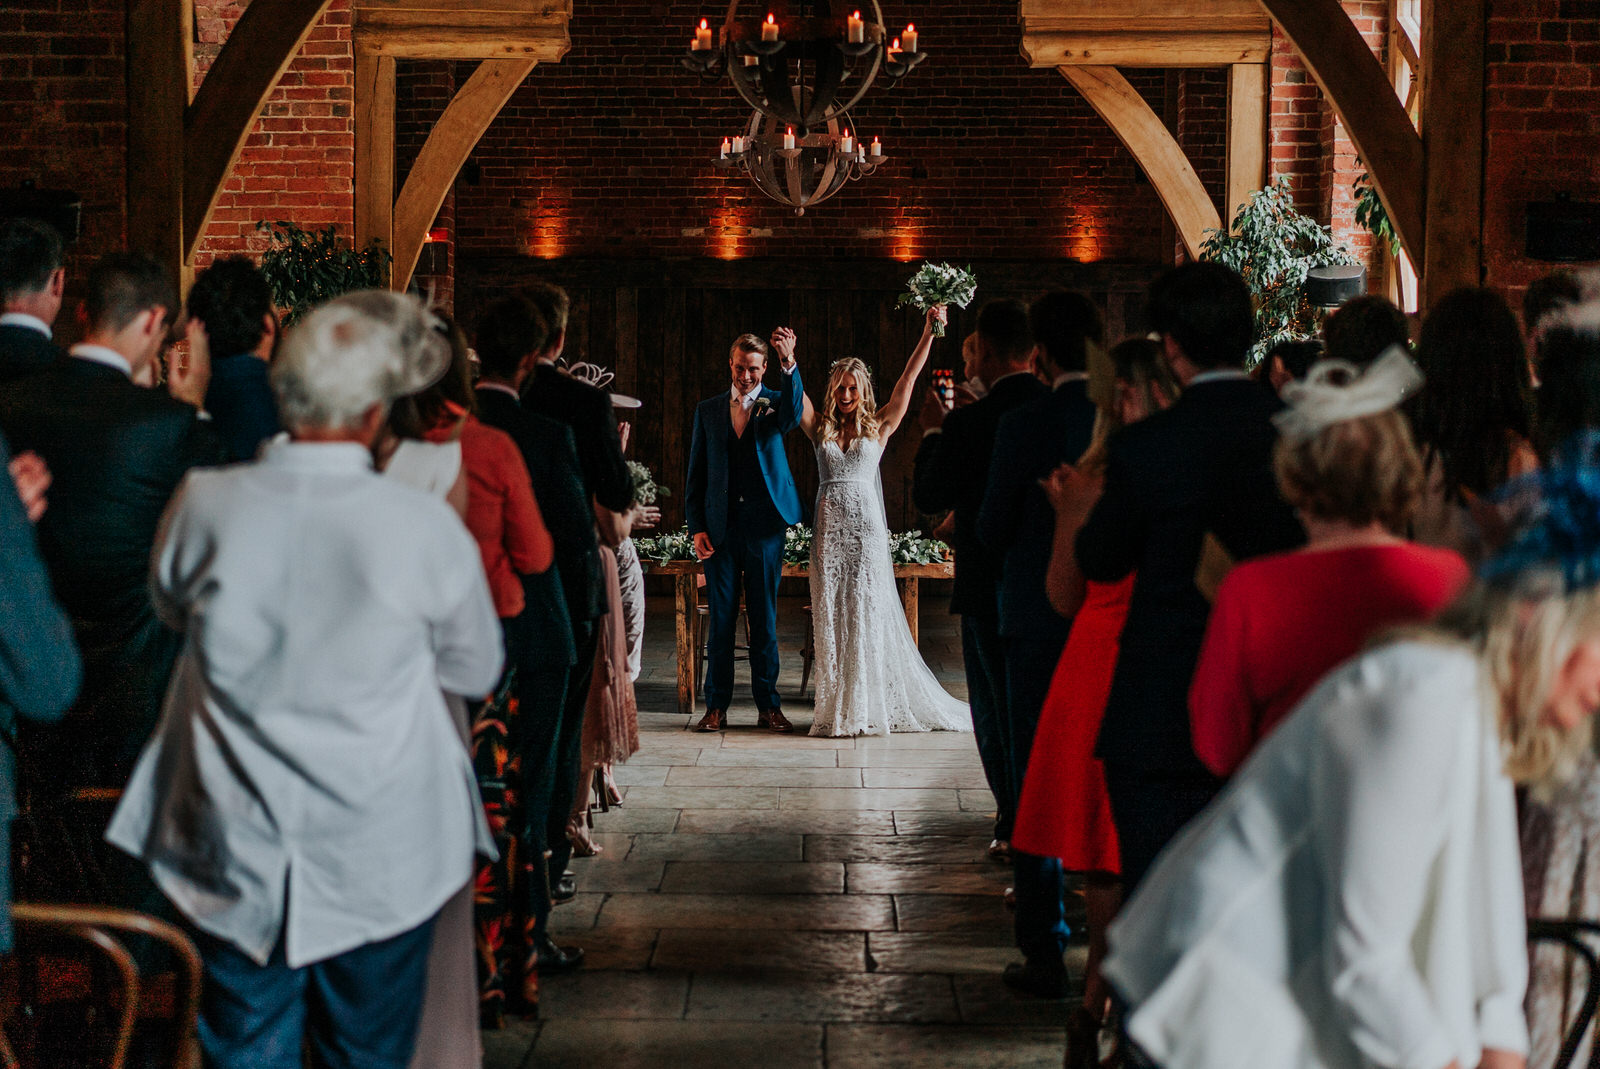 Shustoke Barn - David Boynton - Rachel & Tom - 28.5.18-243shustoke+barn+warwickshire+wedding+venue.jpg